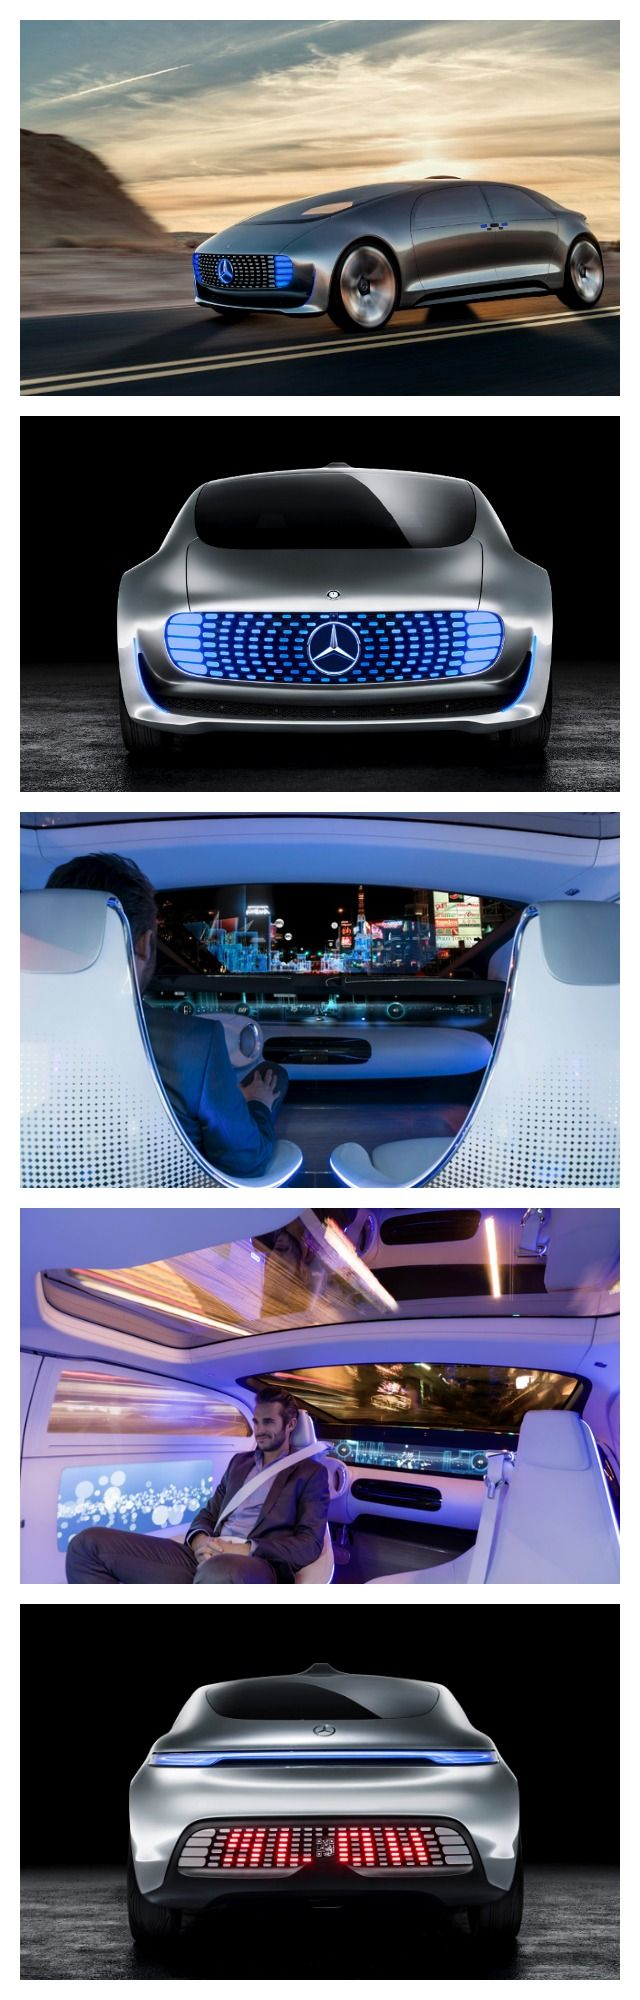 WOW! 10 of the Coolest New Car Tech & Gadget Trends. Some of these will blow your mind! Especially this Mercedes F015... d'autres gadgets ici : http://amzn.to/2kWxdPn